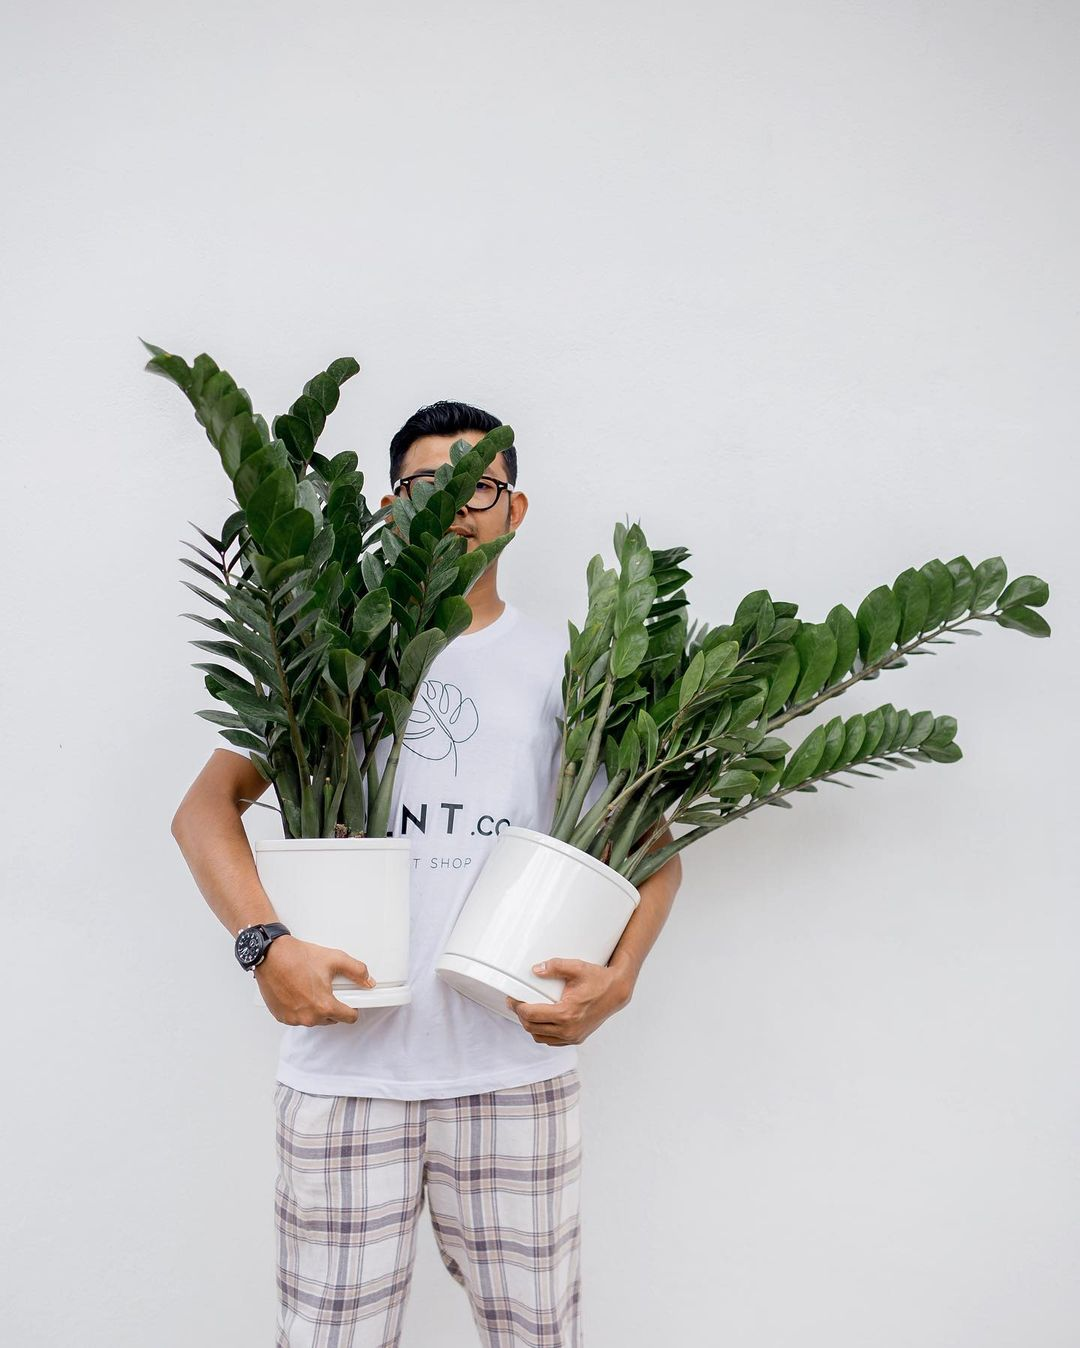 aeries sign man holding two zz plants